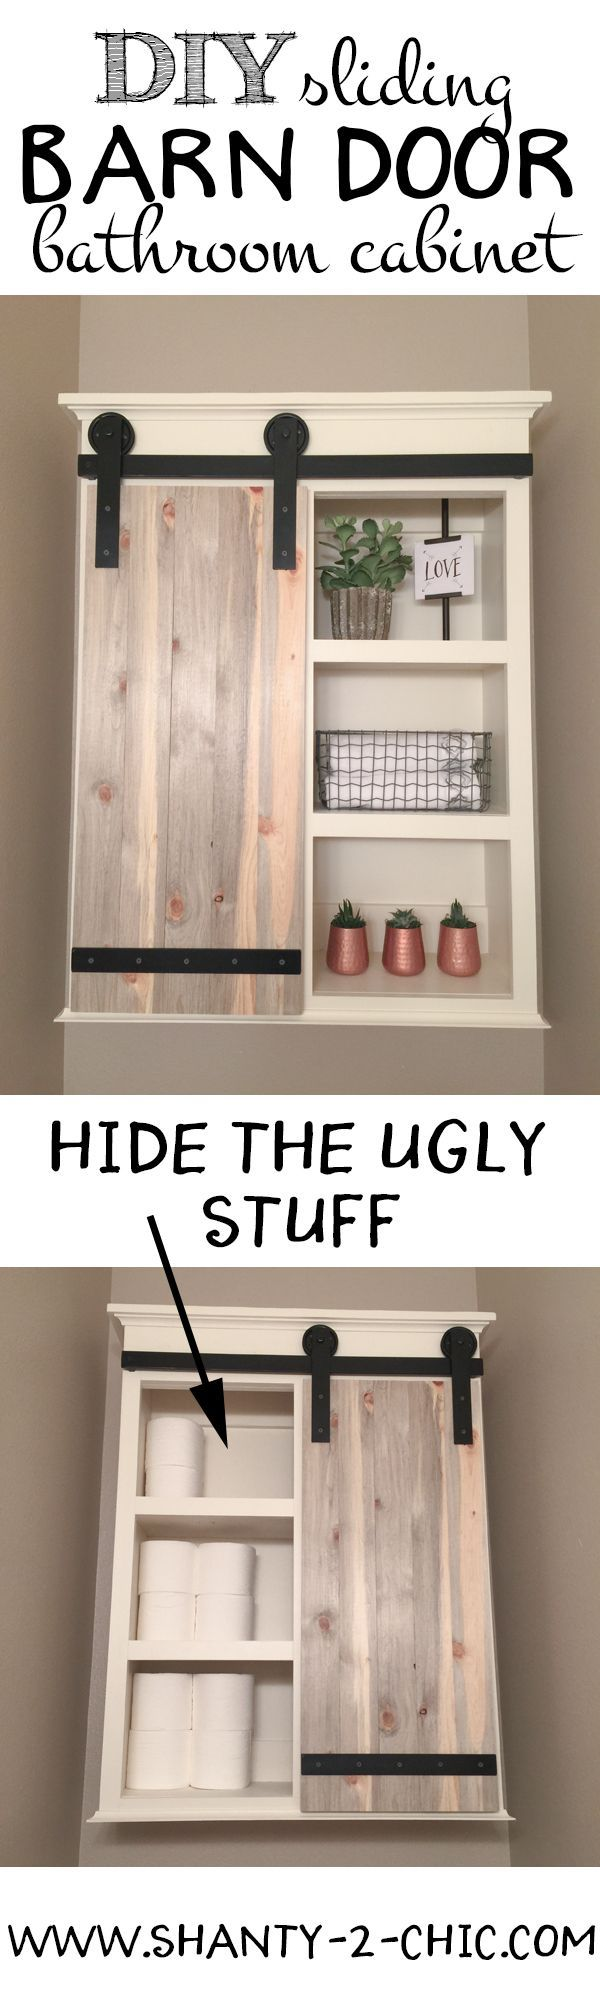 DIY Sliding Barn Door Bathroom Cabinet – Bathroom Storage Cabinet Ideas